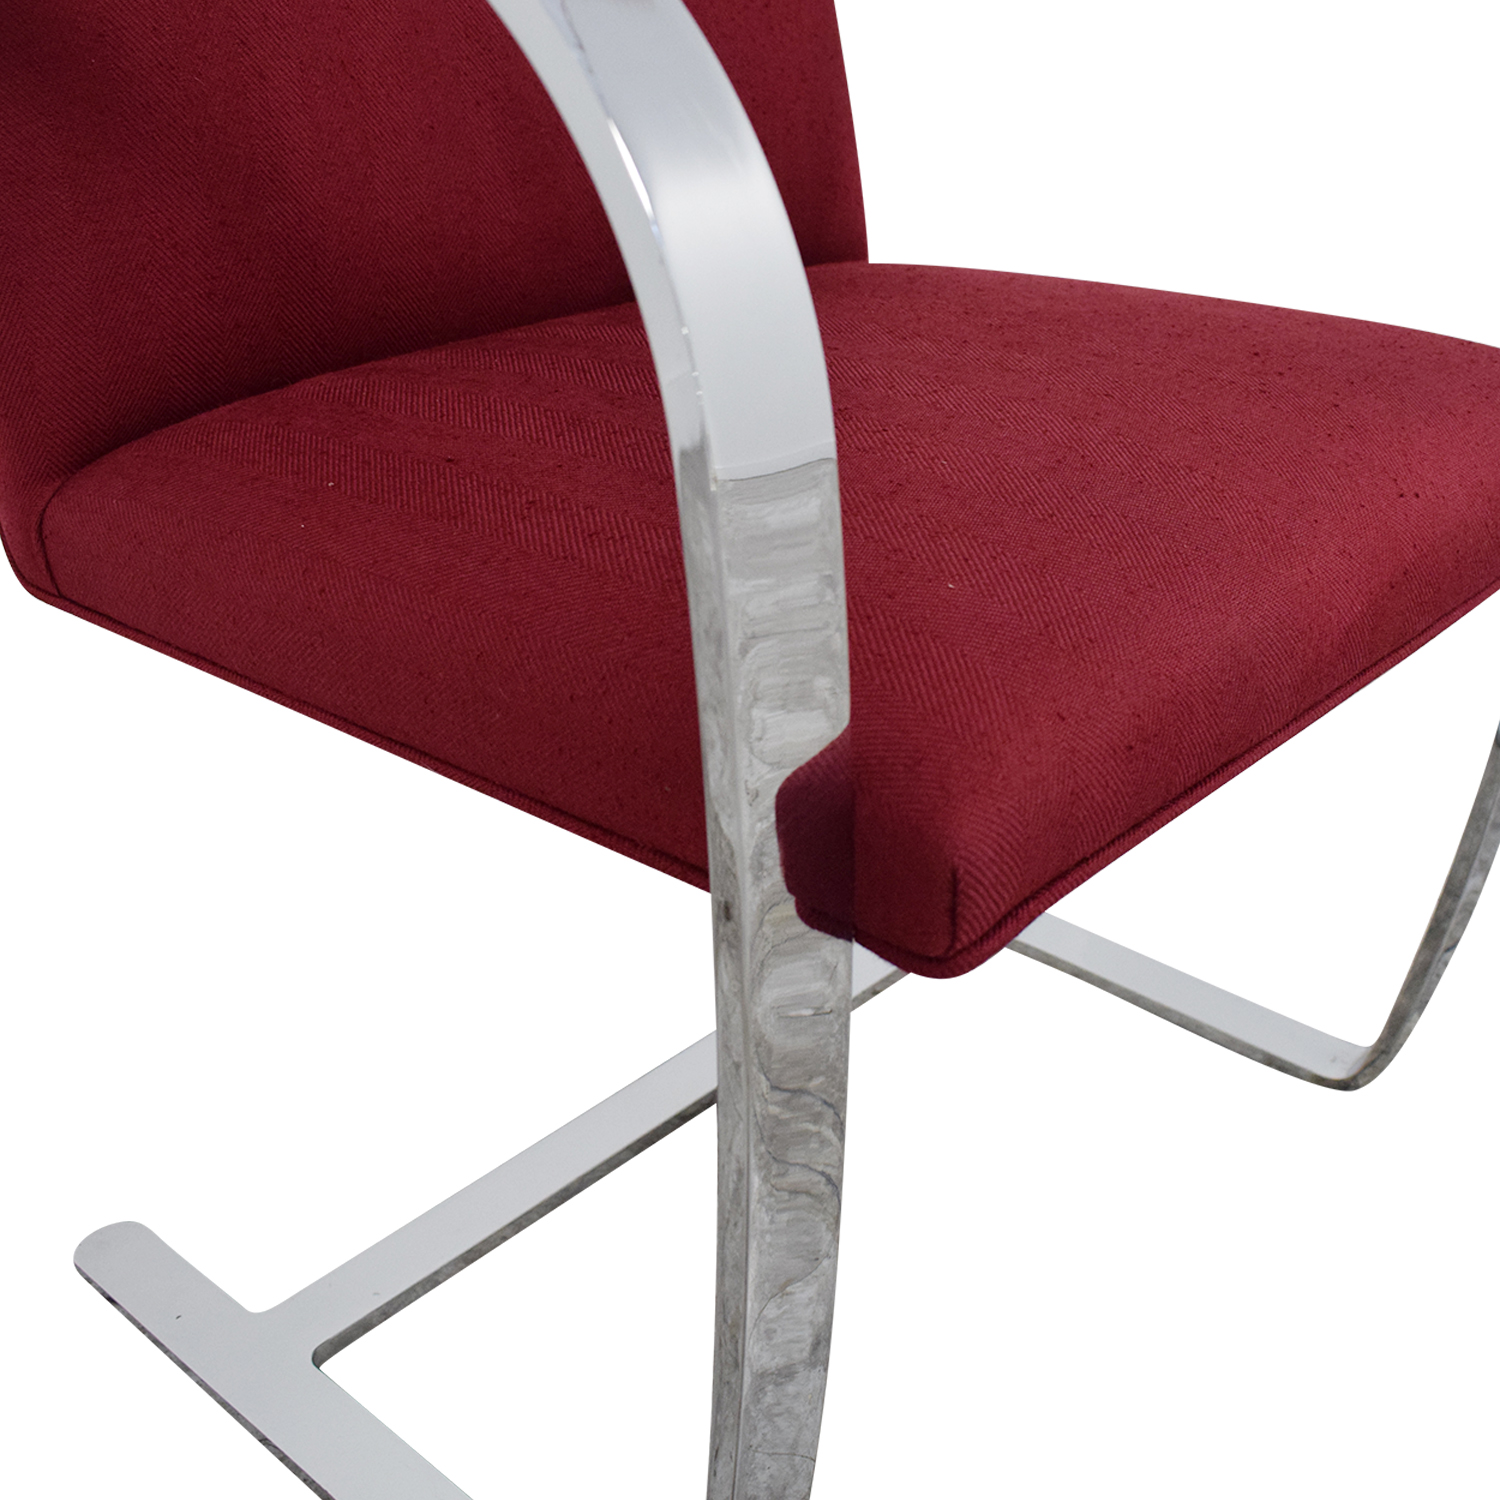 Knoll Knoll BRNO Chair with Flat Bar Frame price